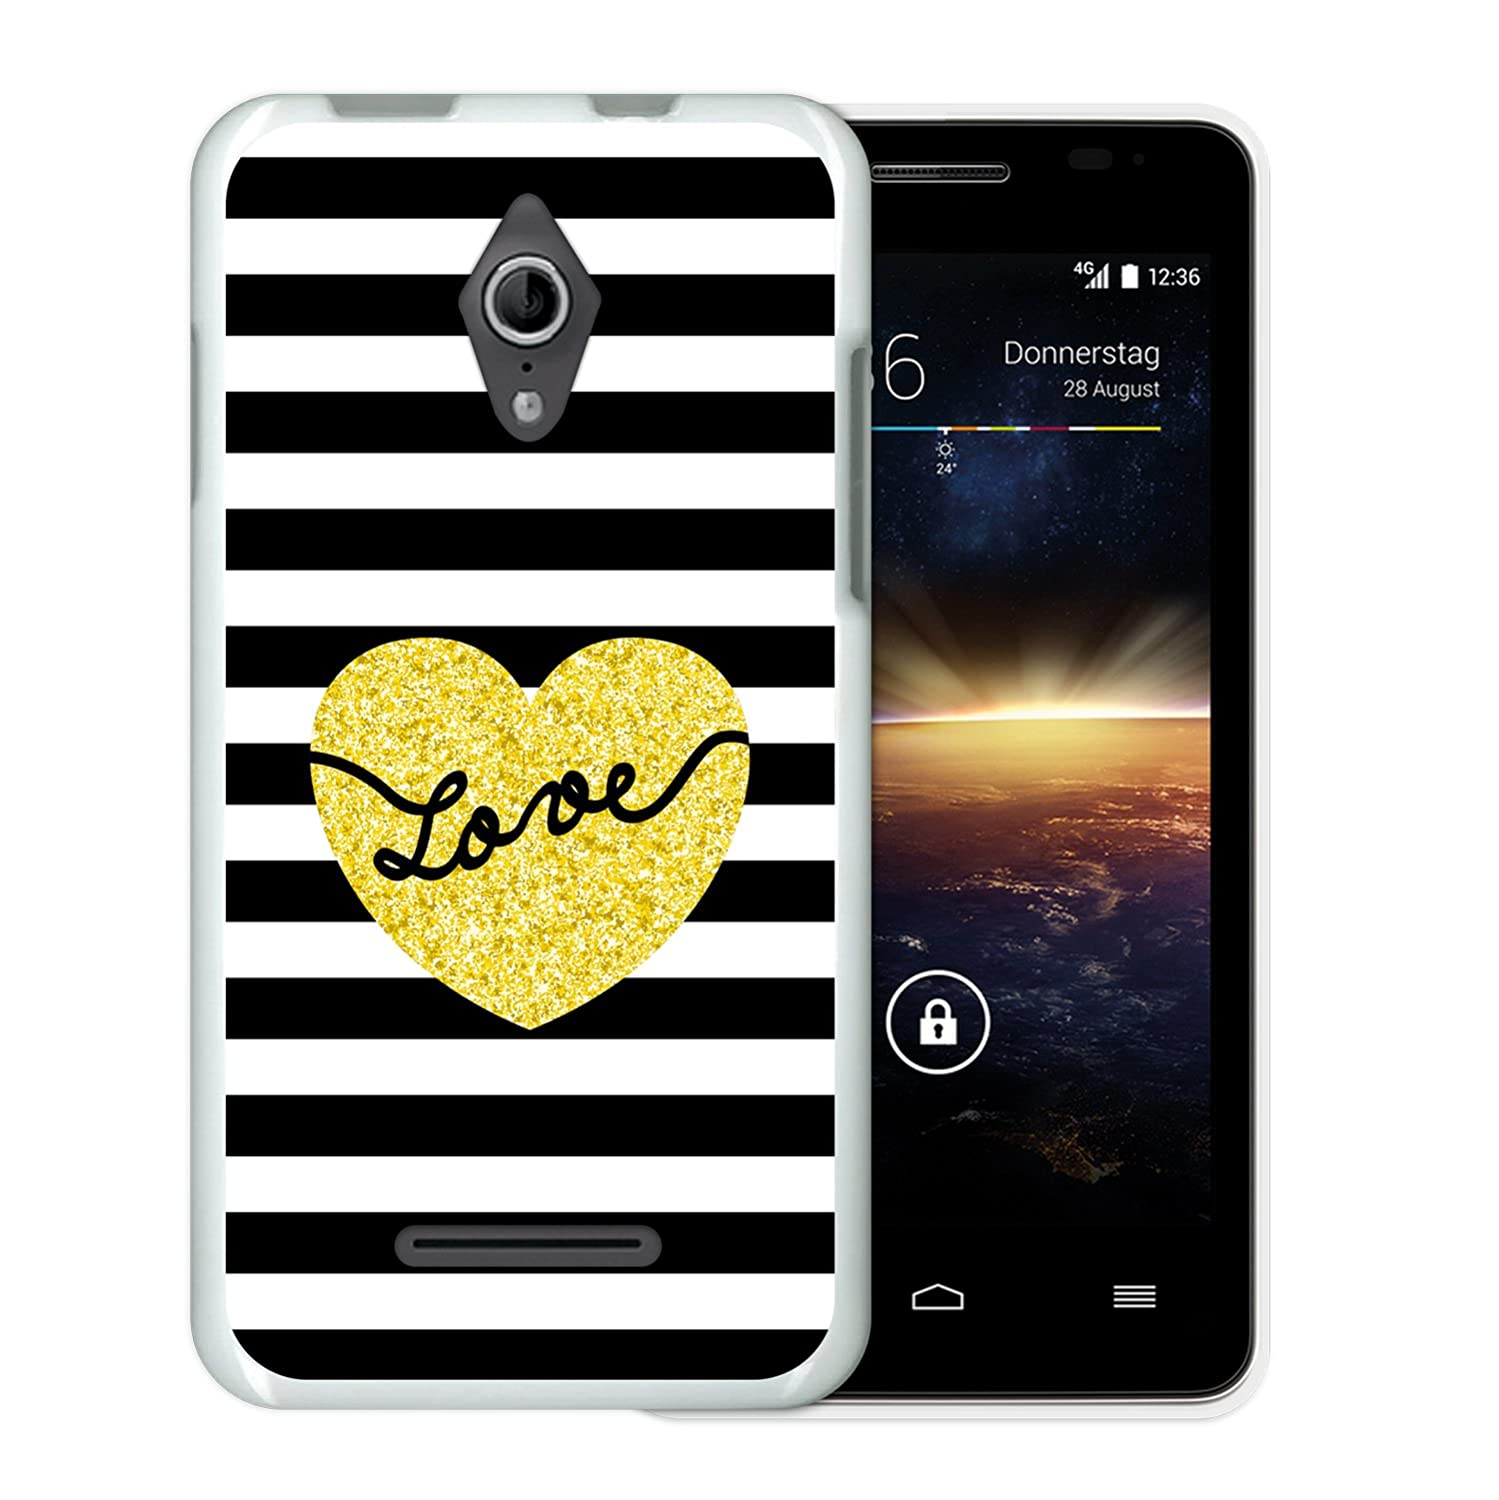 WoowCase Funda Vodafone Smart 4 Turbo, [Vodafone Smart 4 Turbo ] Funda Silicona Gel Flexible Corazones Pintados, Carcasa Case TPU Silicona: Amazon.es: ...